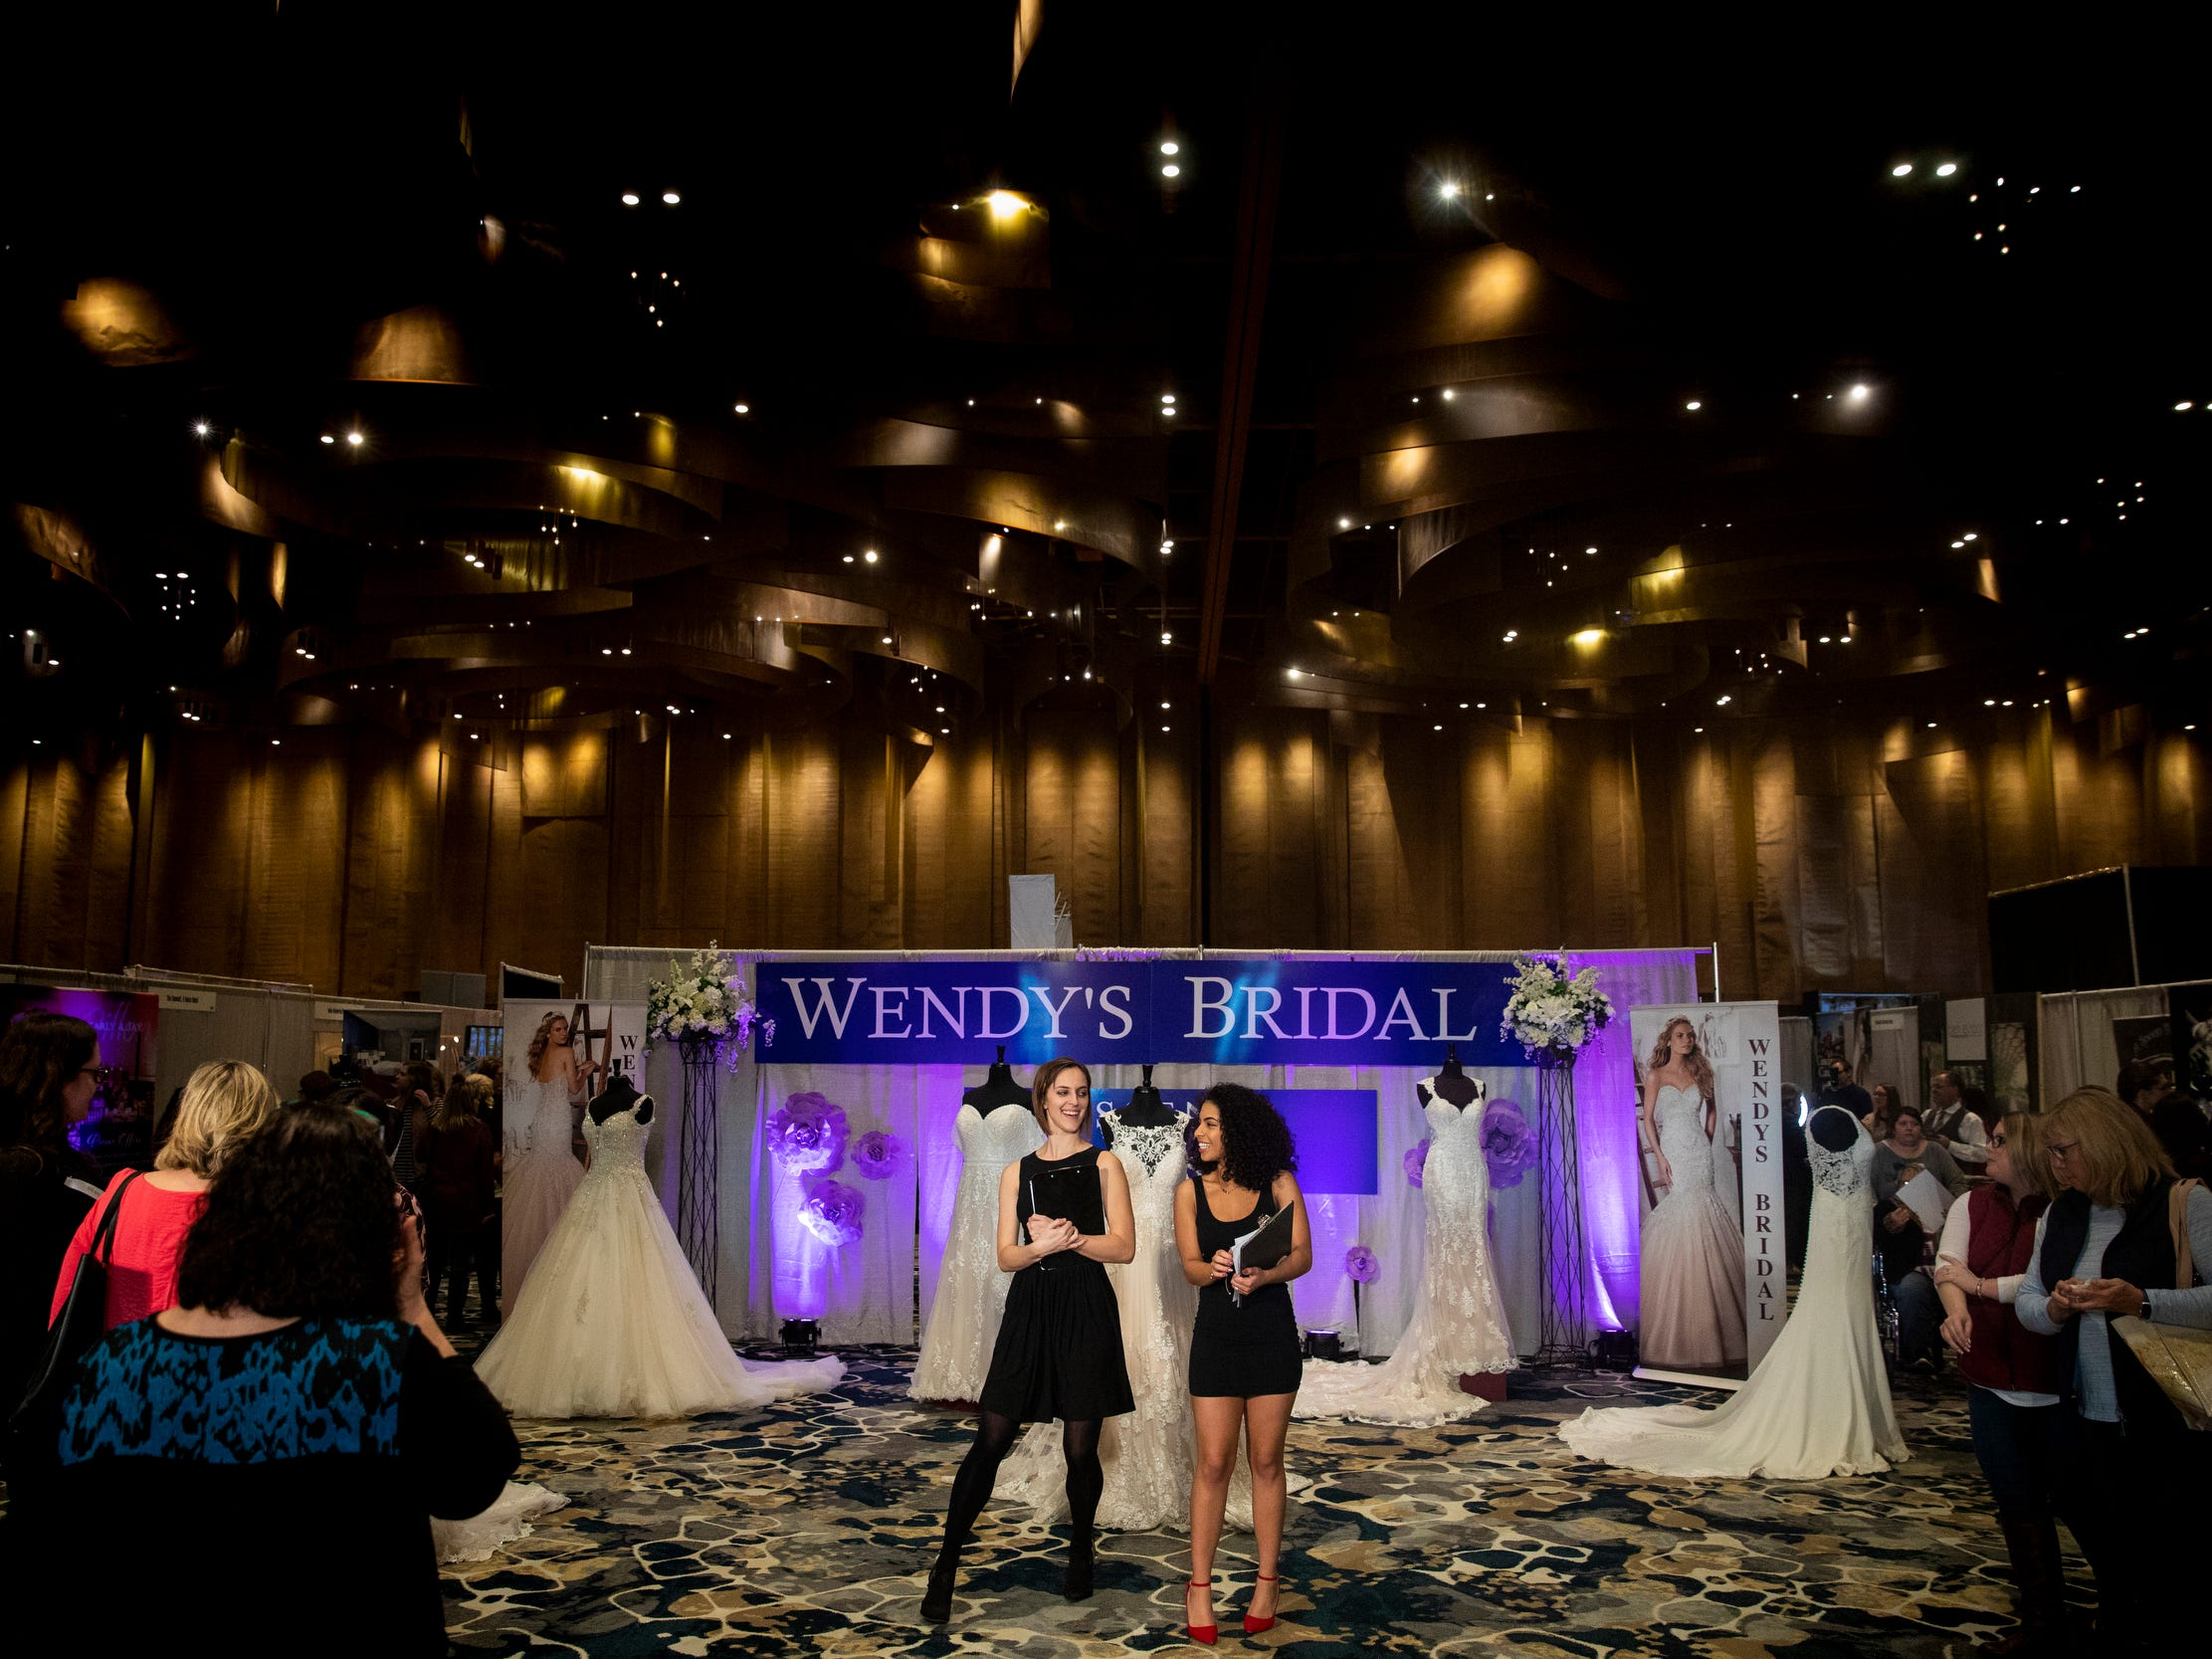 Hundreds of brides and vendors gather for the Wendy's Bridal Show at the Duke Energy Convention Center Saturday, January 5, 2019 in Downtown Cincinnati.  The Show will be open Sunday, January 6, 2019 from 11 a.m. to 5 p.m.